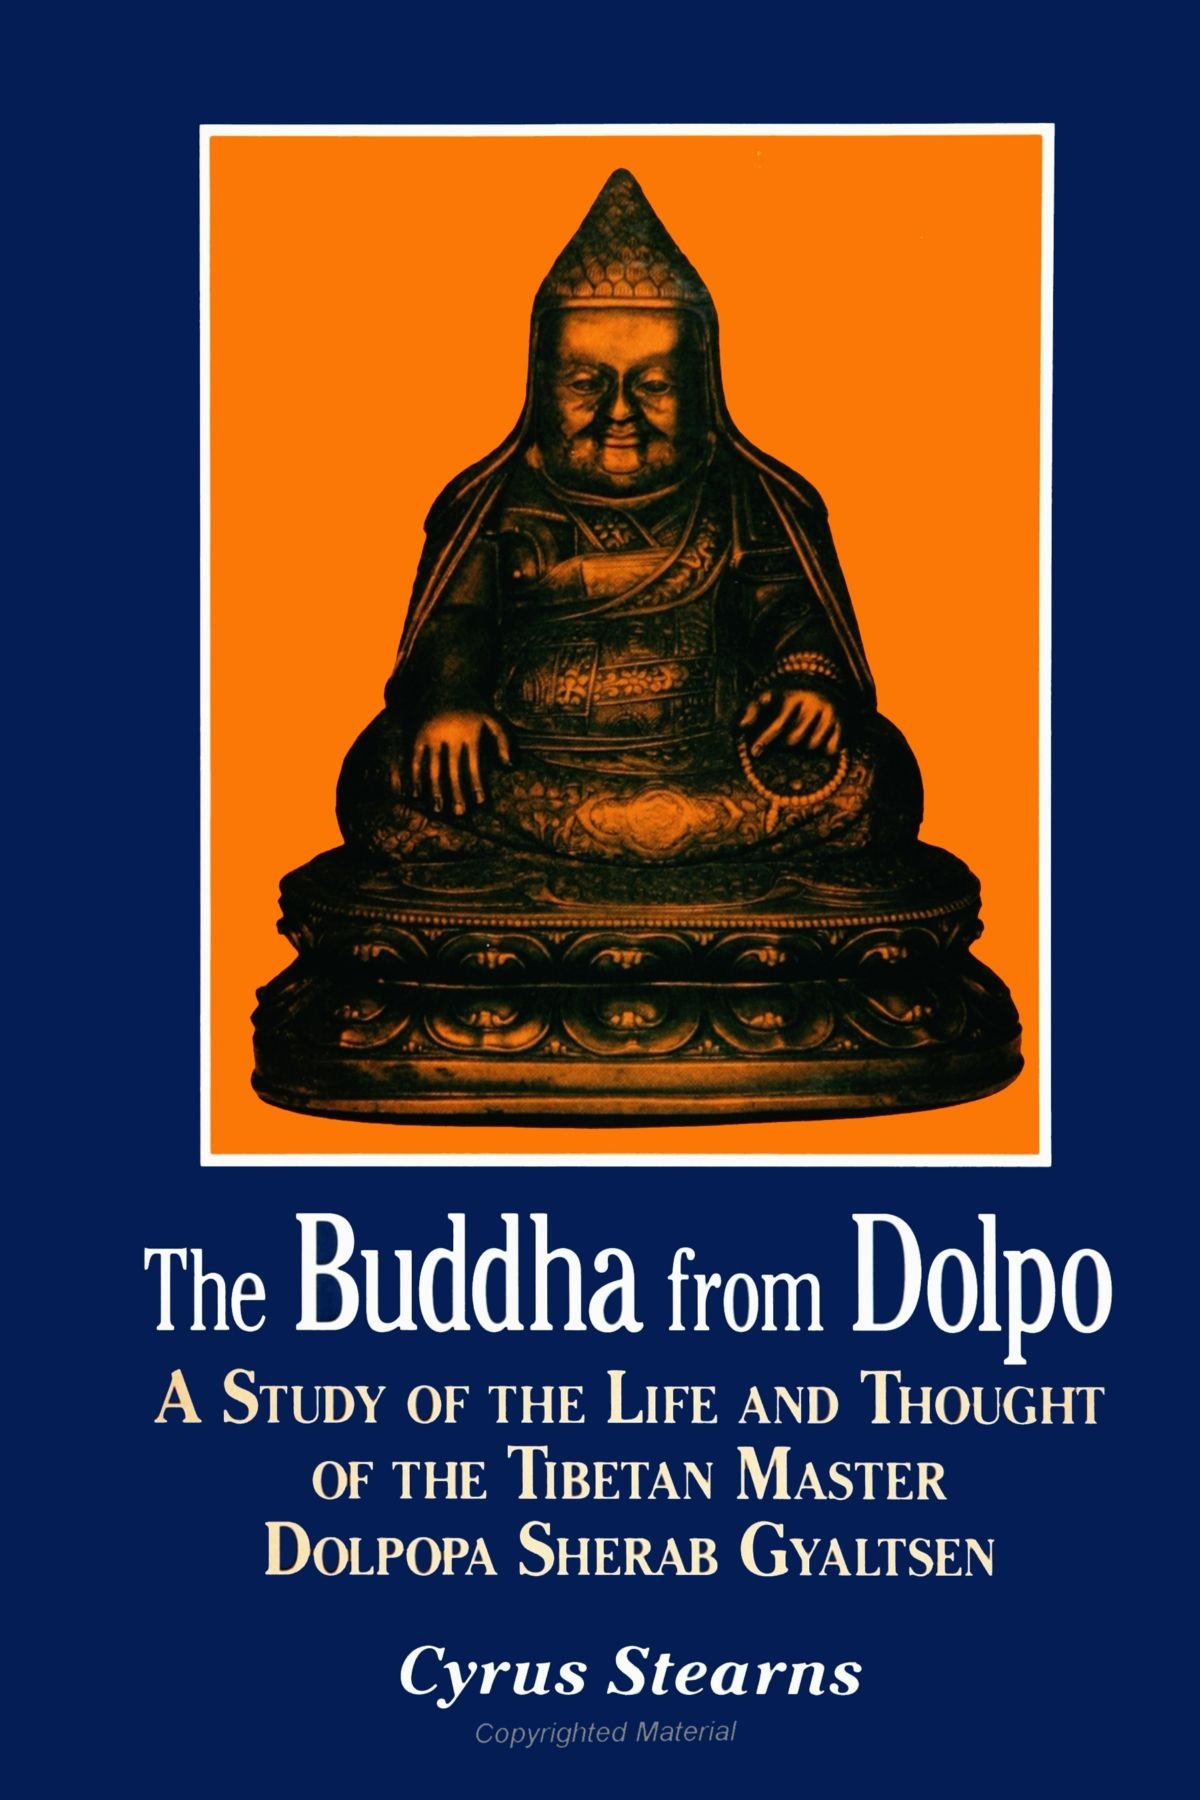 The Buddha from Dolpo: A Study of the Life and Thought of the Tibetan Master Dolpopa Sherab Gyaltsen (SUNY Series in Buddhist Studies)